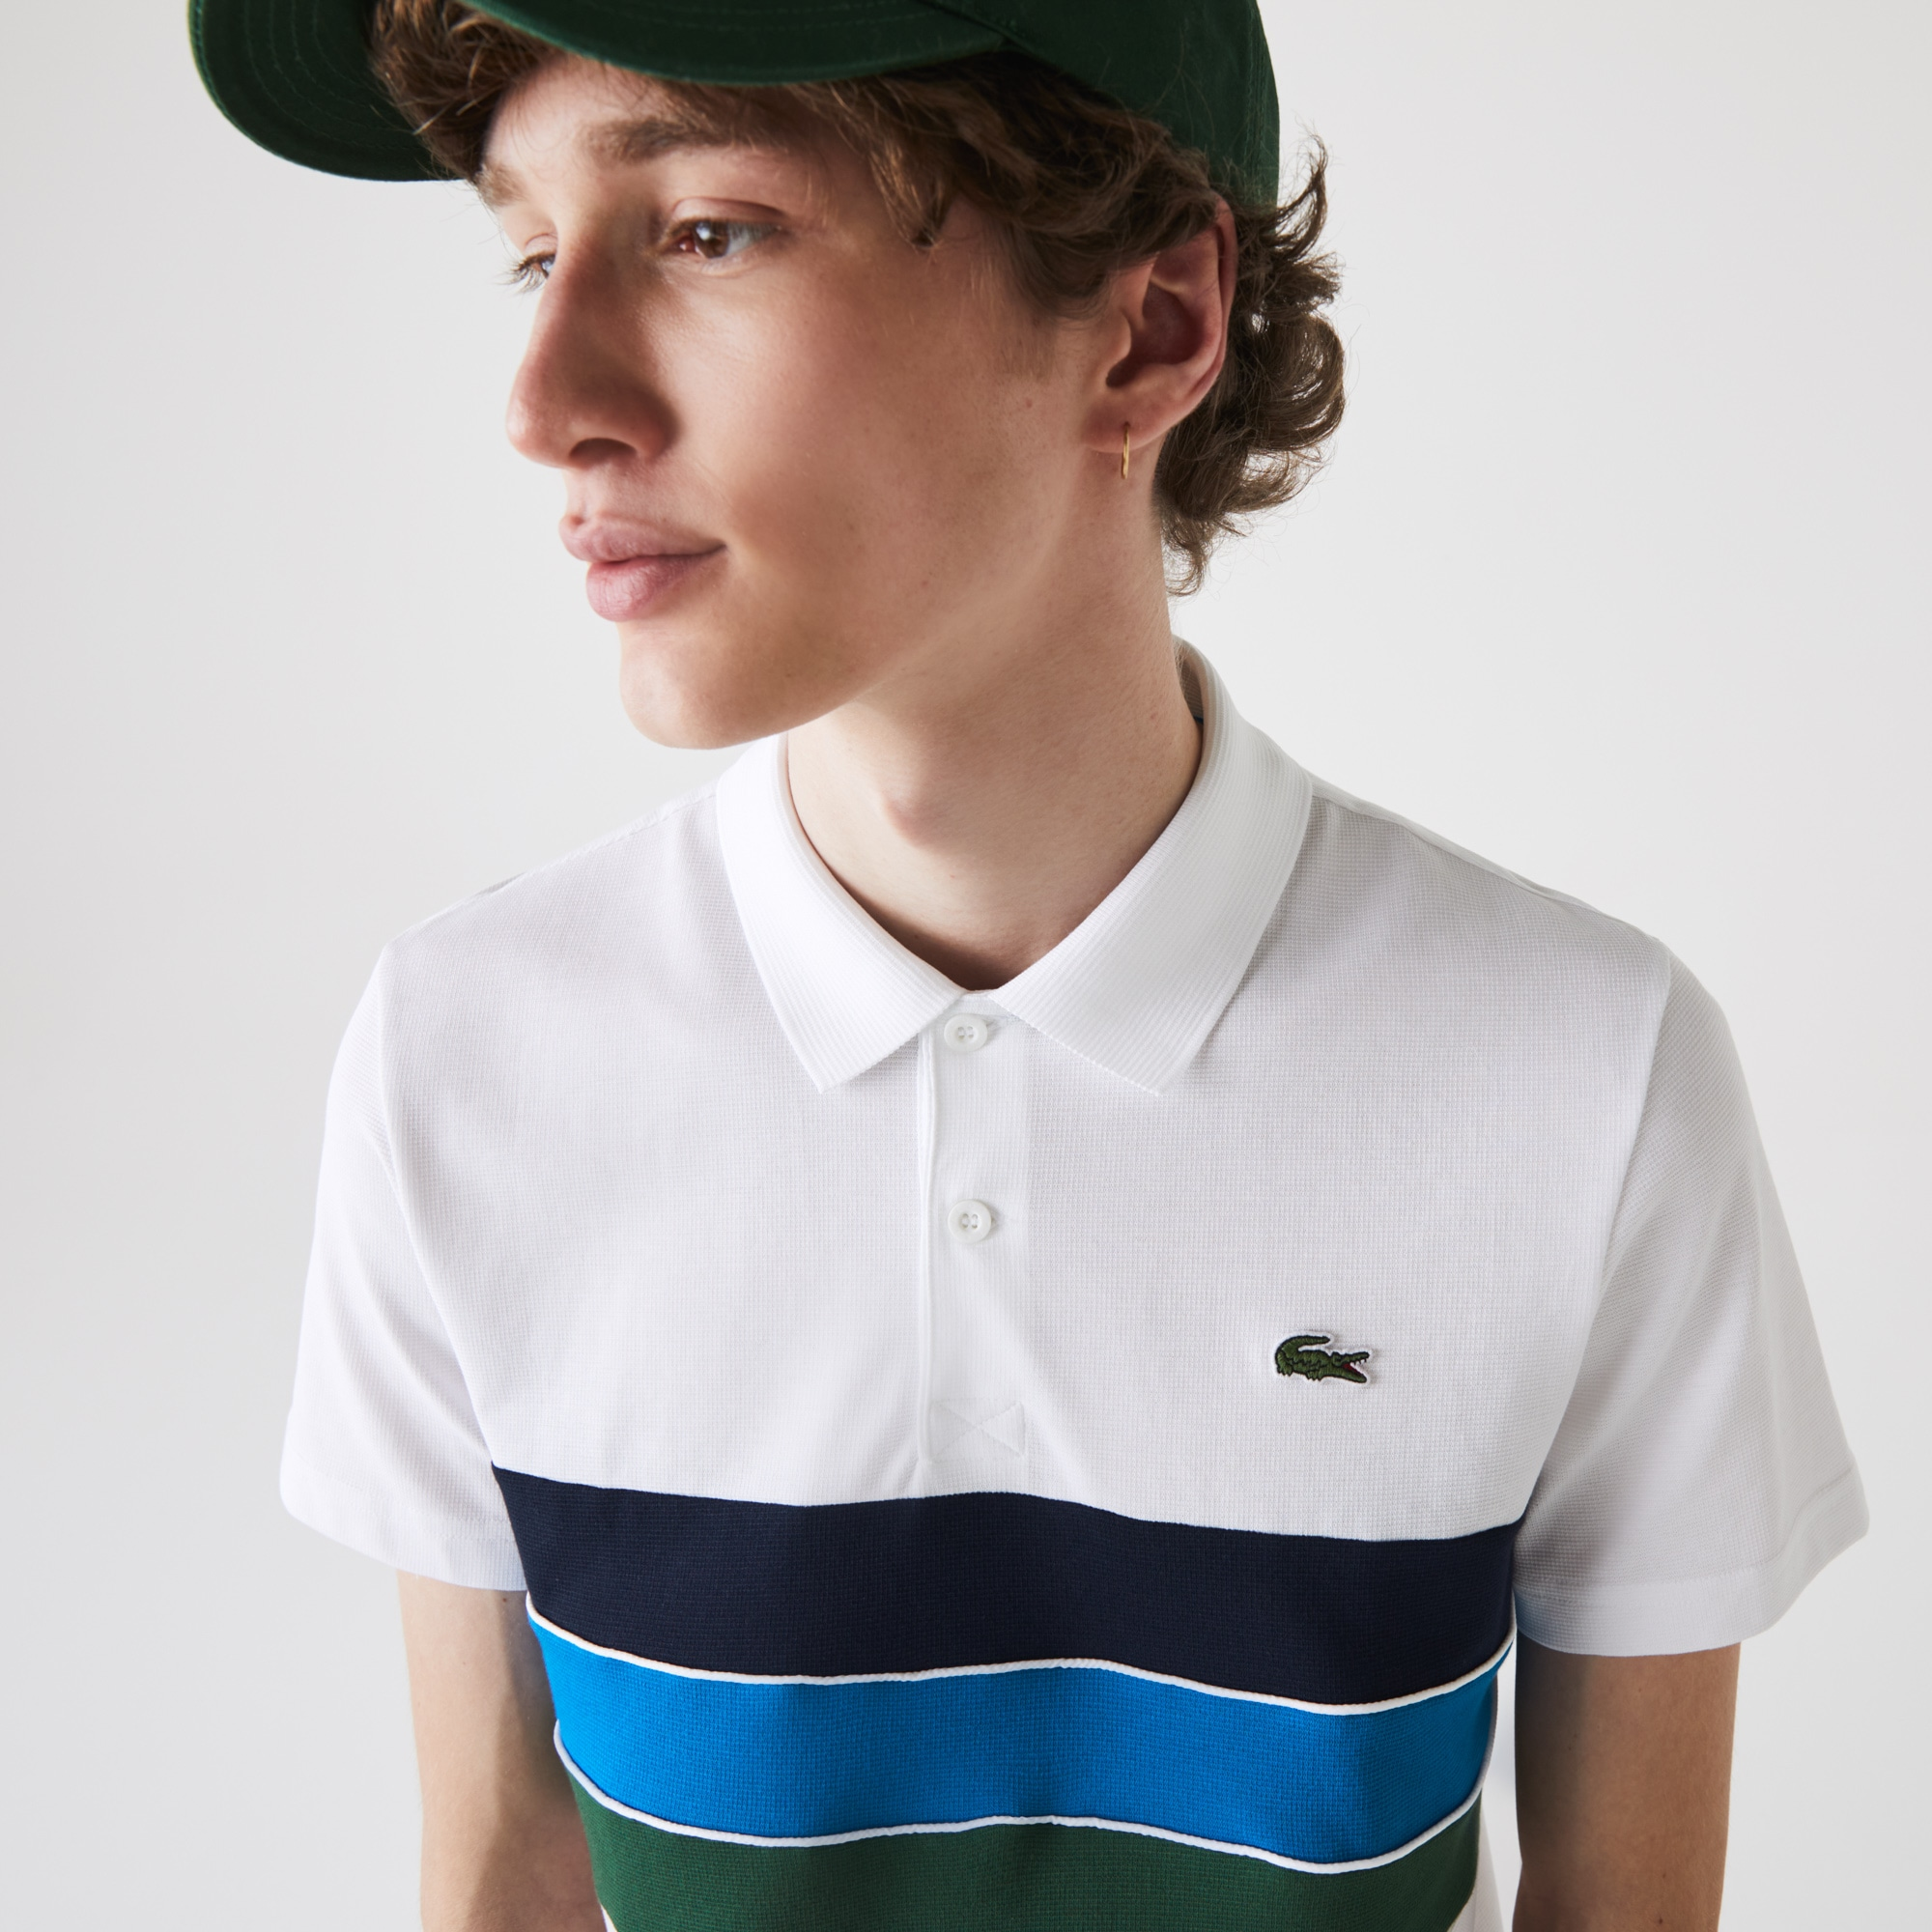 Lacoste Mens SPORT Tricolor Paneled Lightweight Cotton Polo Shirt